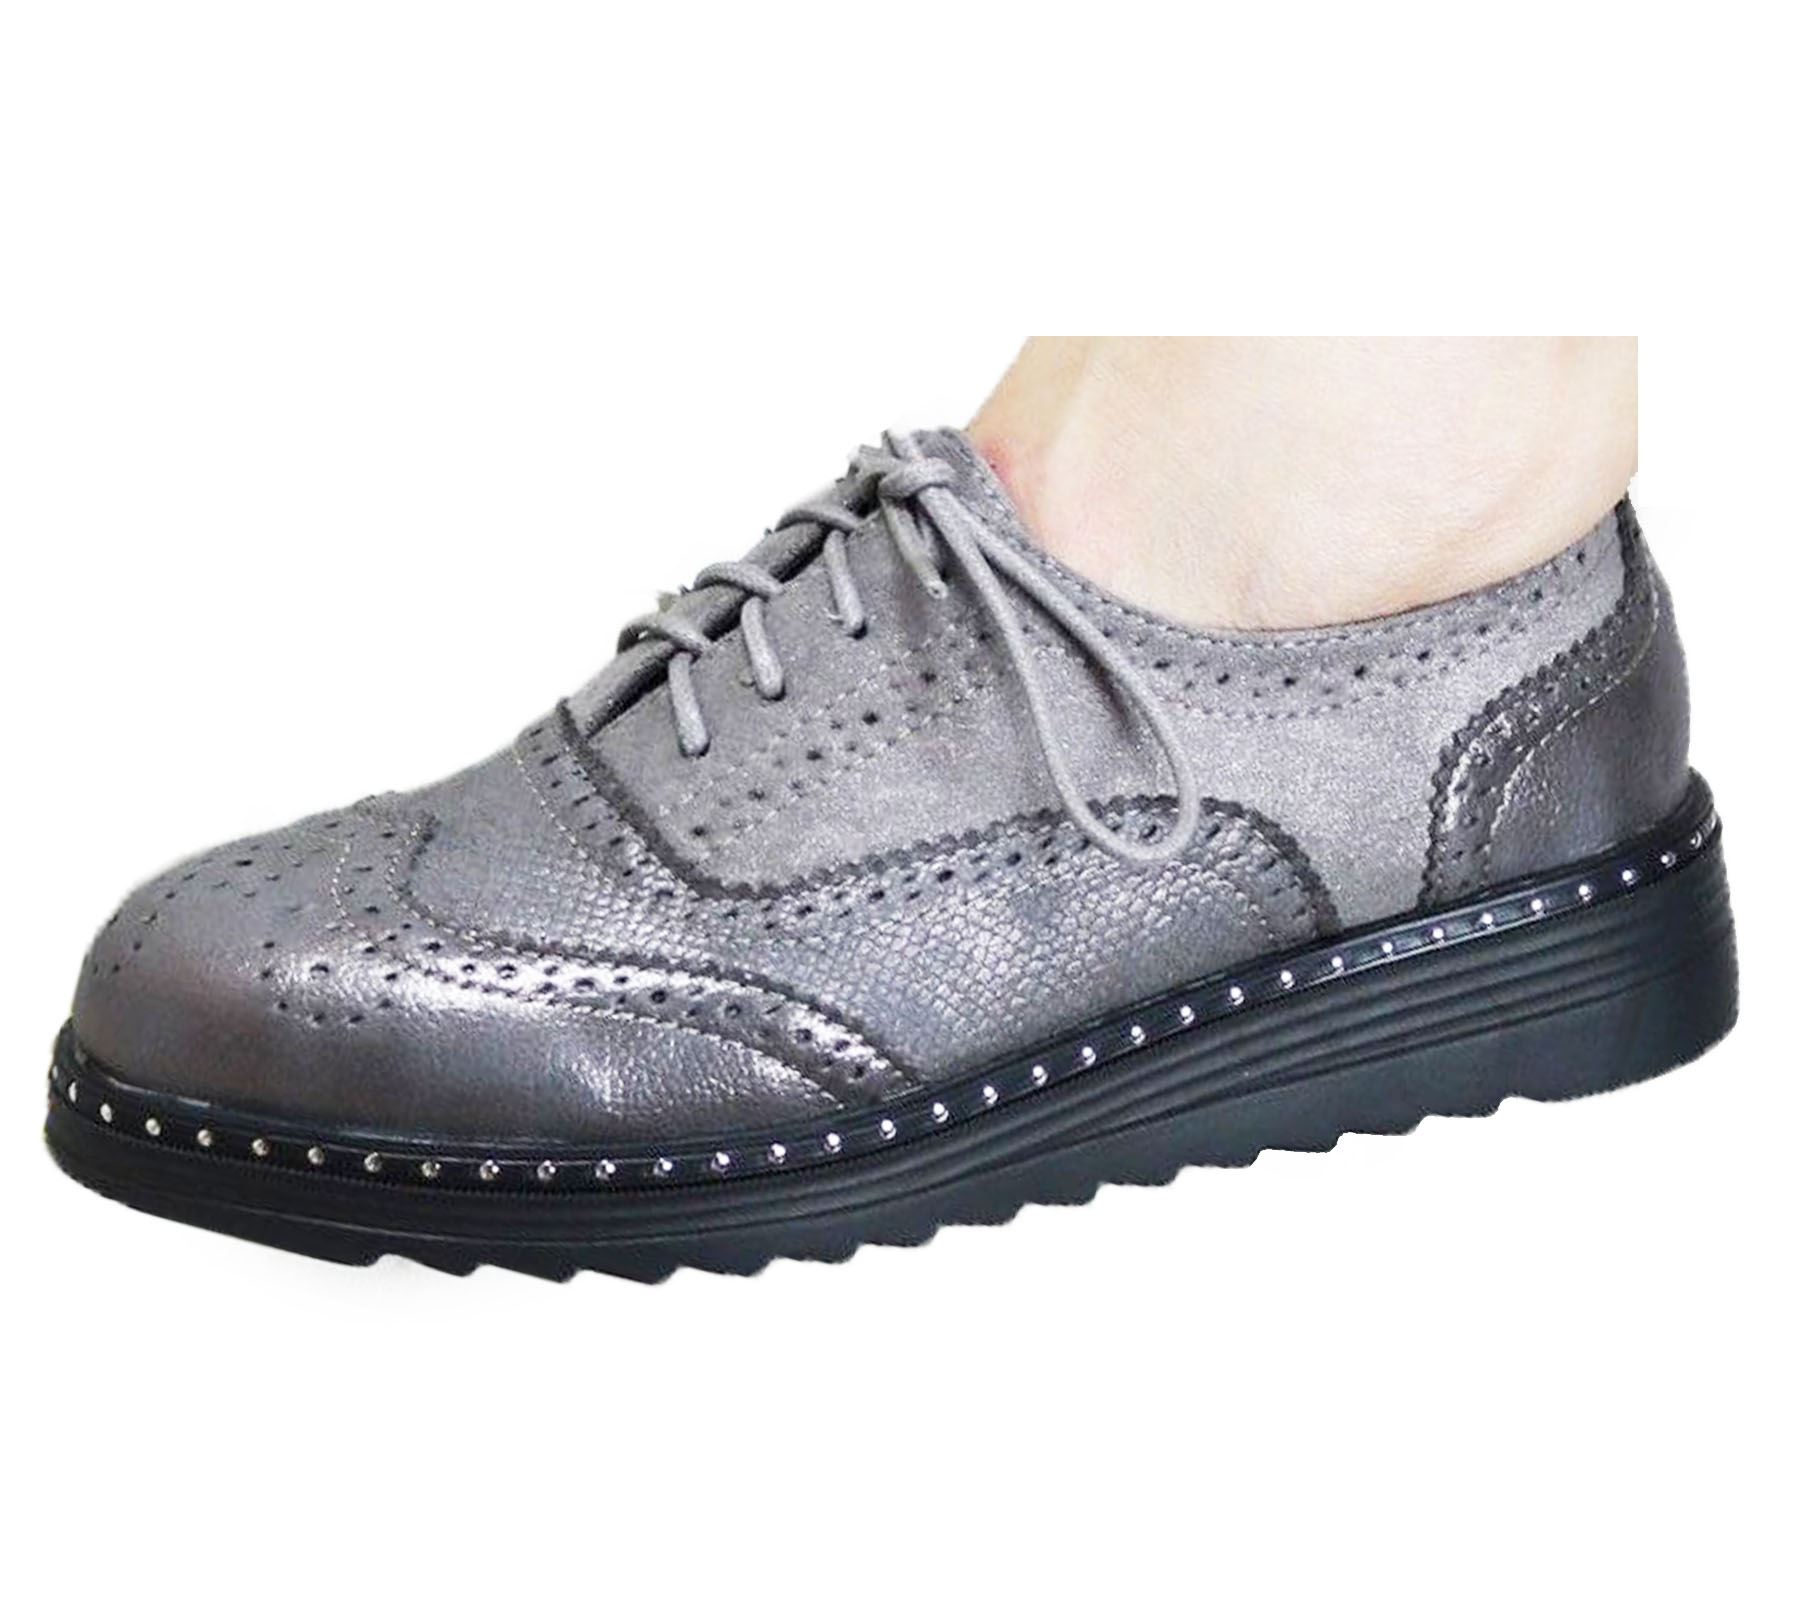 Ladies-Brogue-Lace-Up-Shoes-Womens-Oxford-Smart-Office-Loafers-Shoes miniatura 18